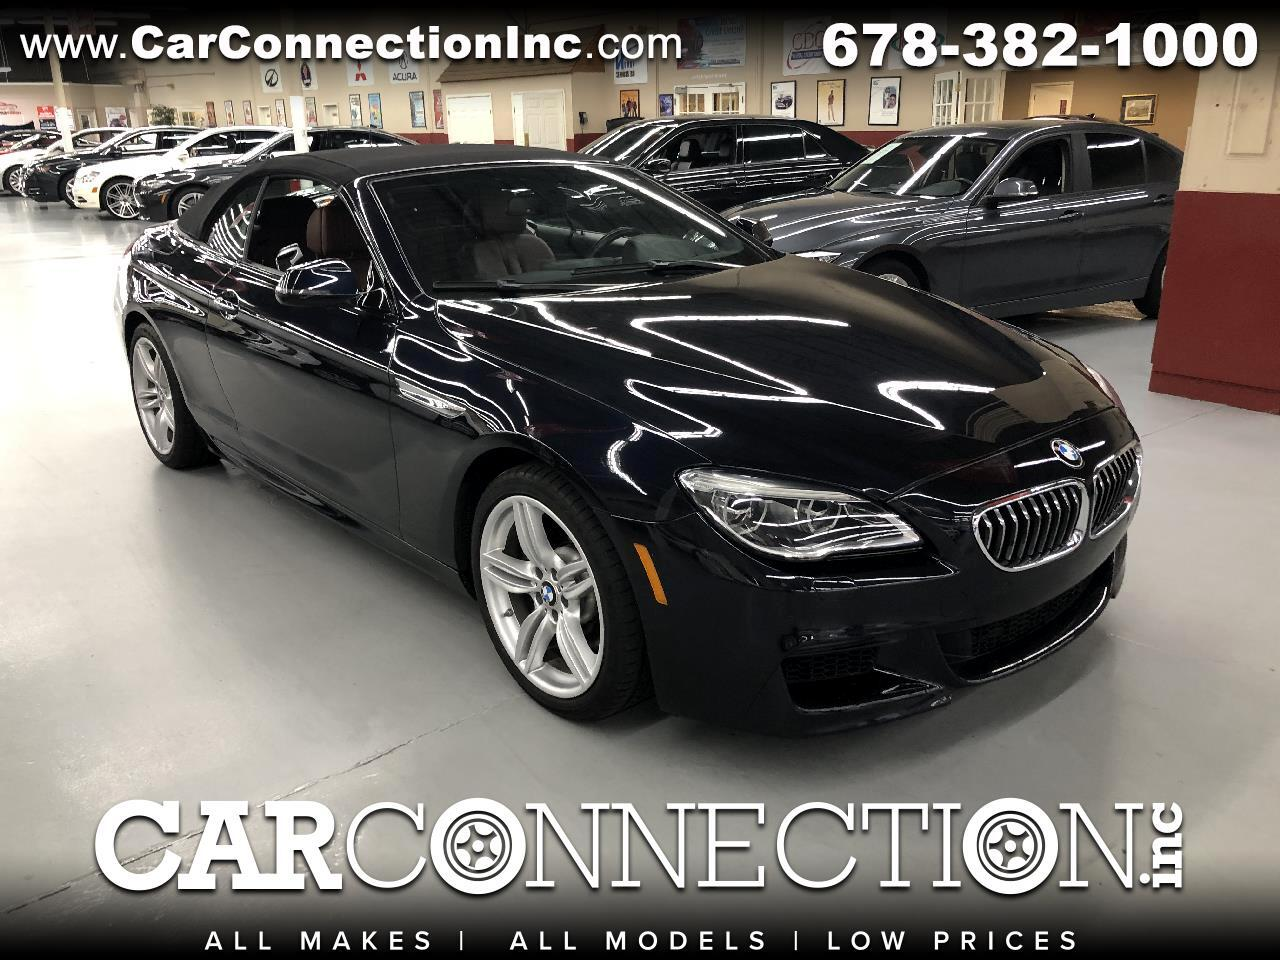 2016 BMW 6 Series 640i xDrive Sport Convertible